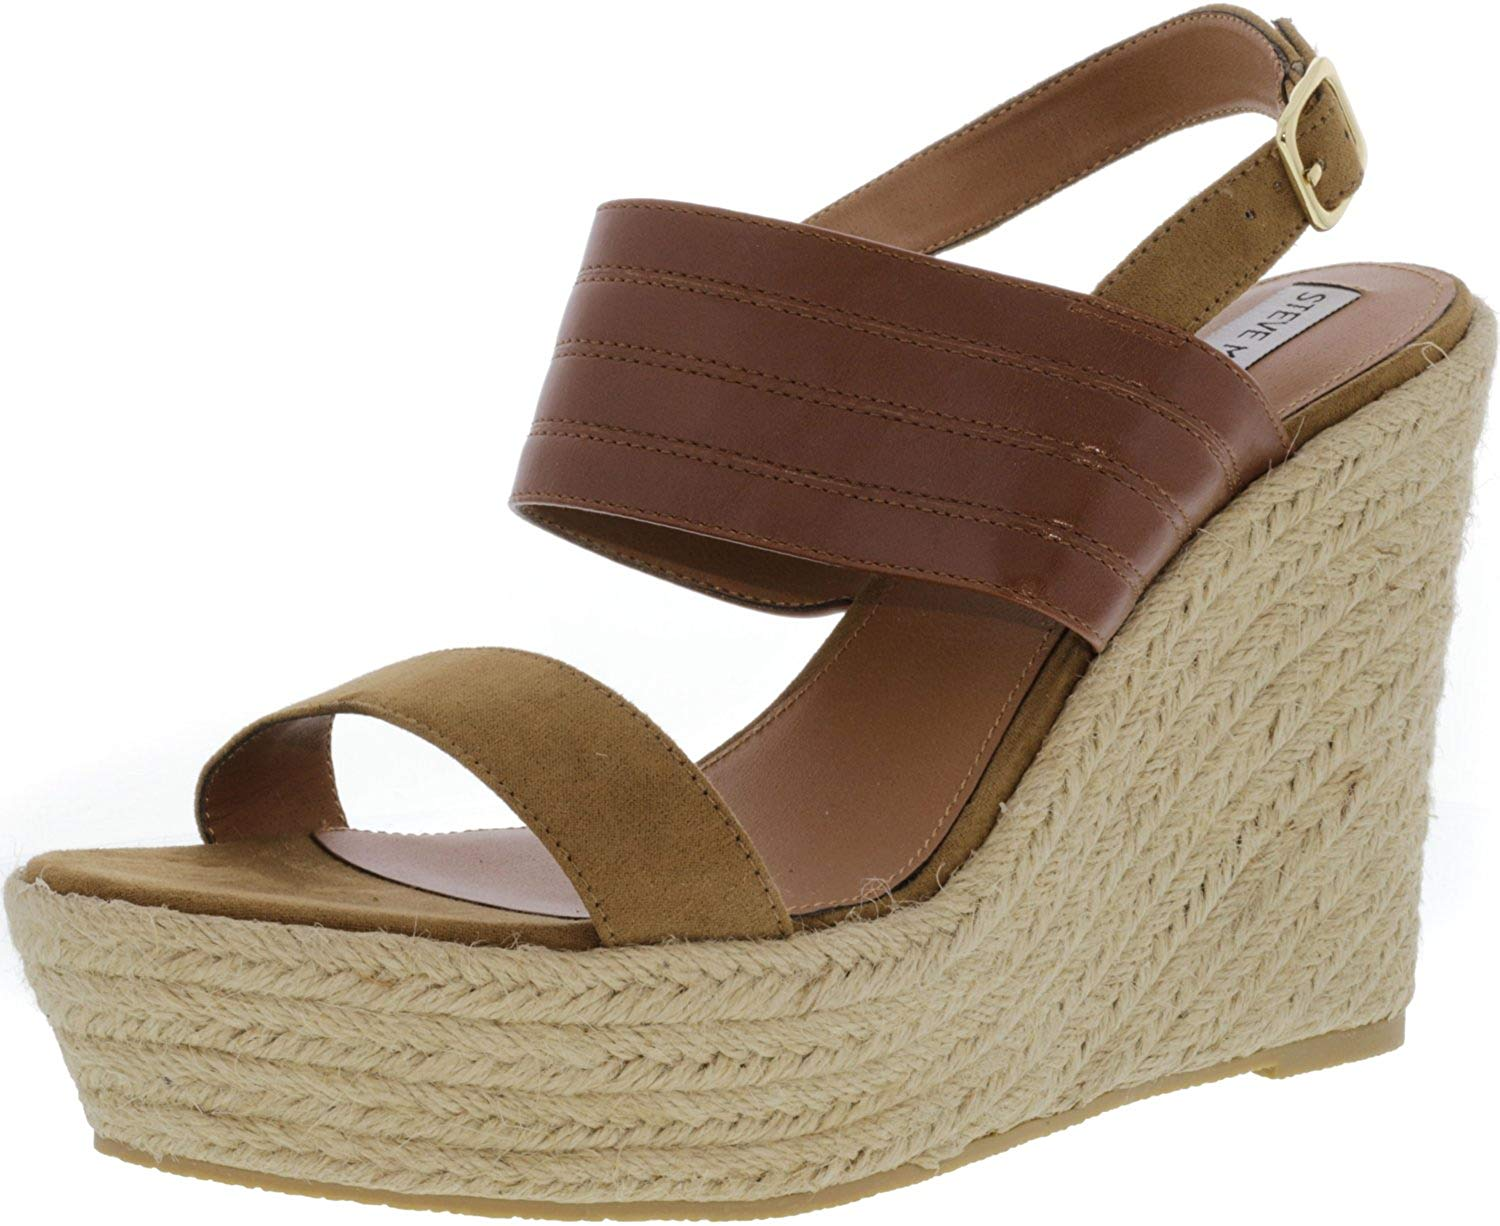 b66cc440e34e Get Quotations · Steve Madden Womens Prima Open Toe Wedge Sandals